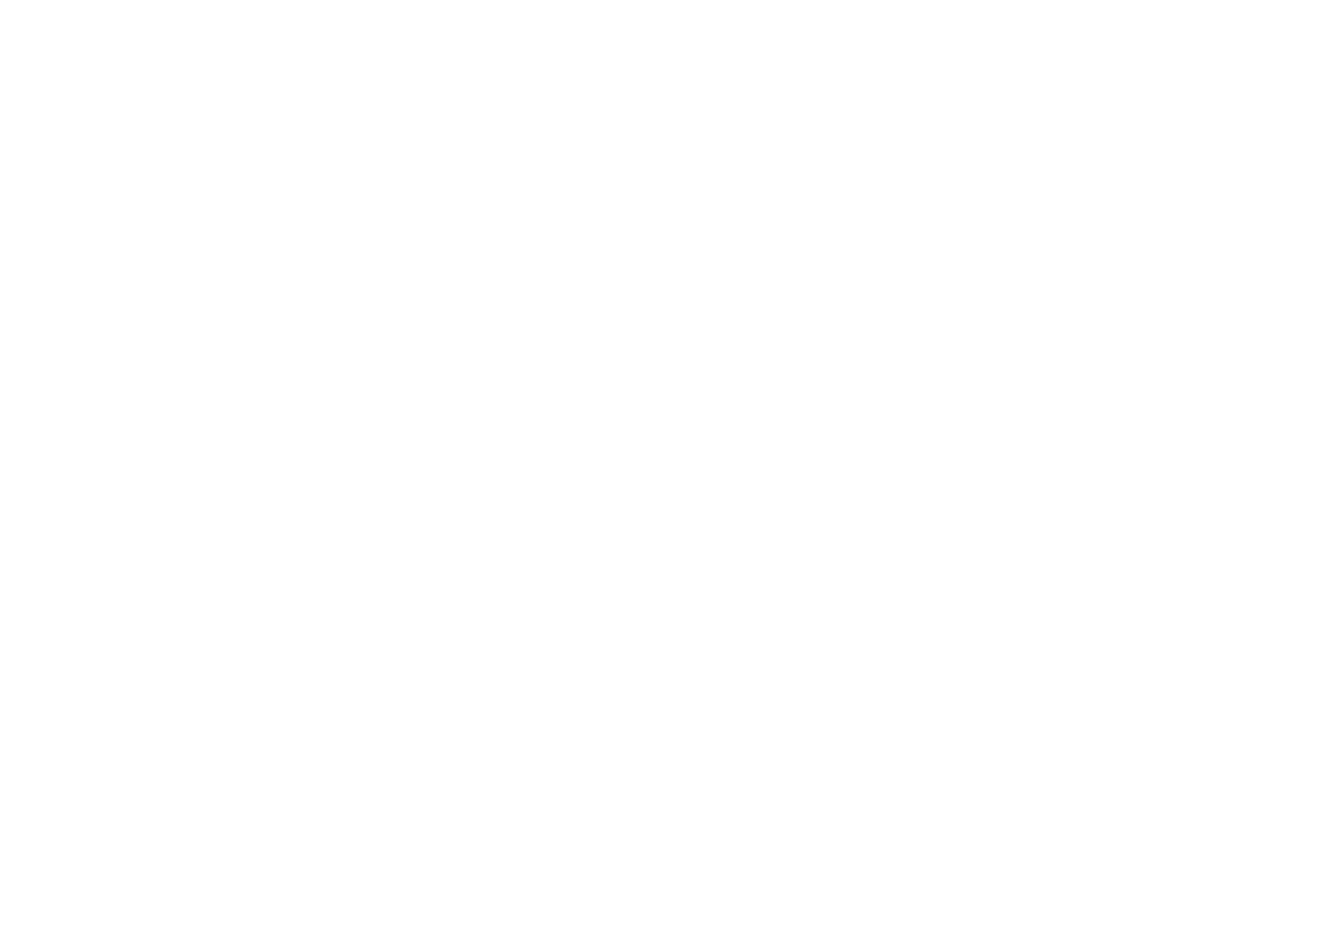 snowballrally